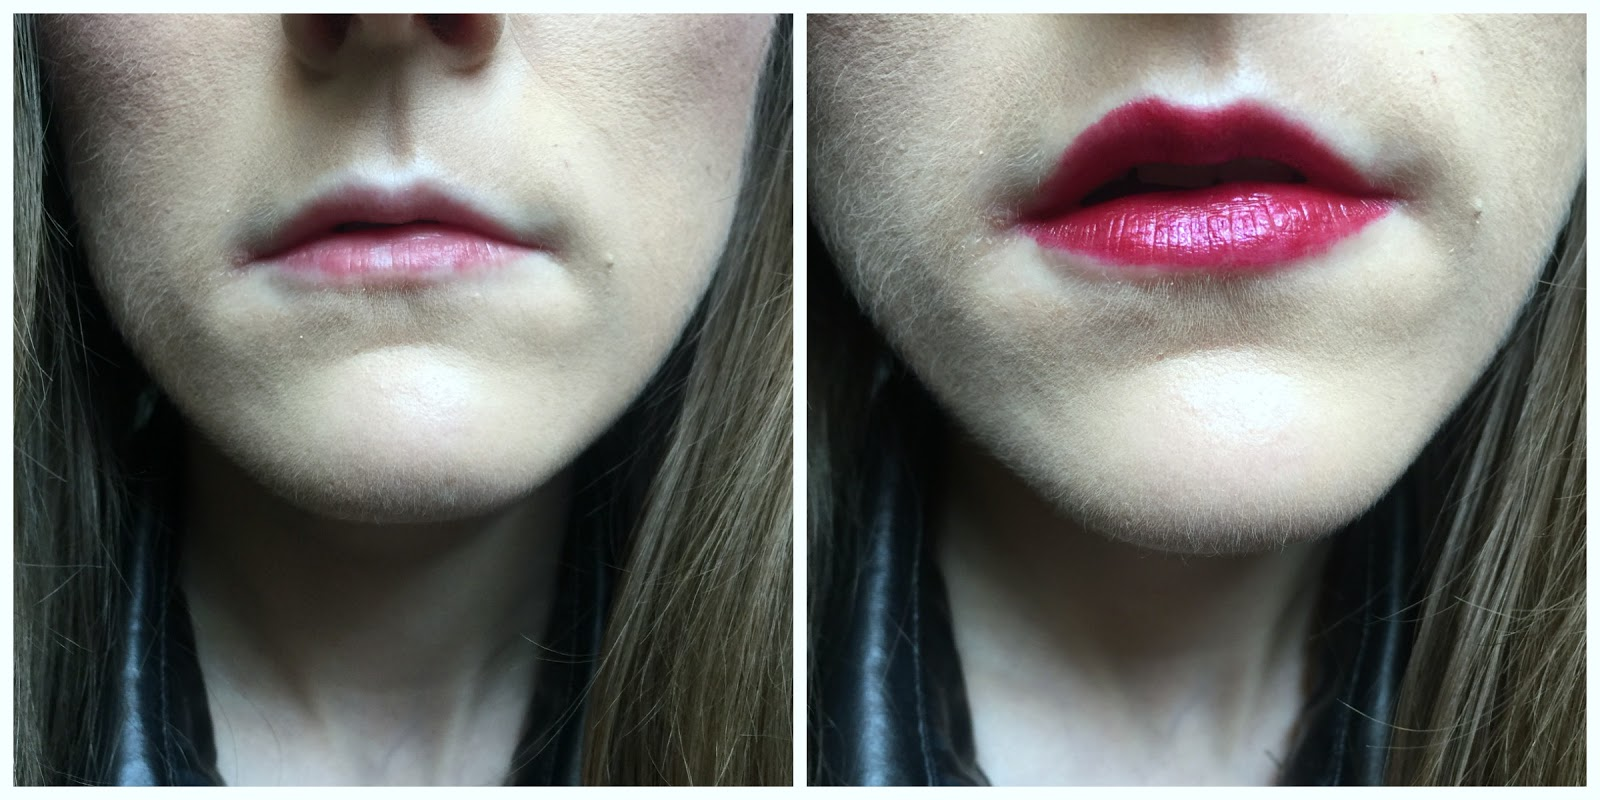 sleep lip vip in scandalous before and after